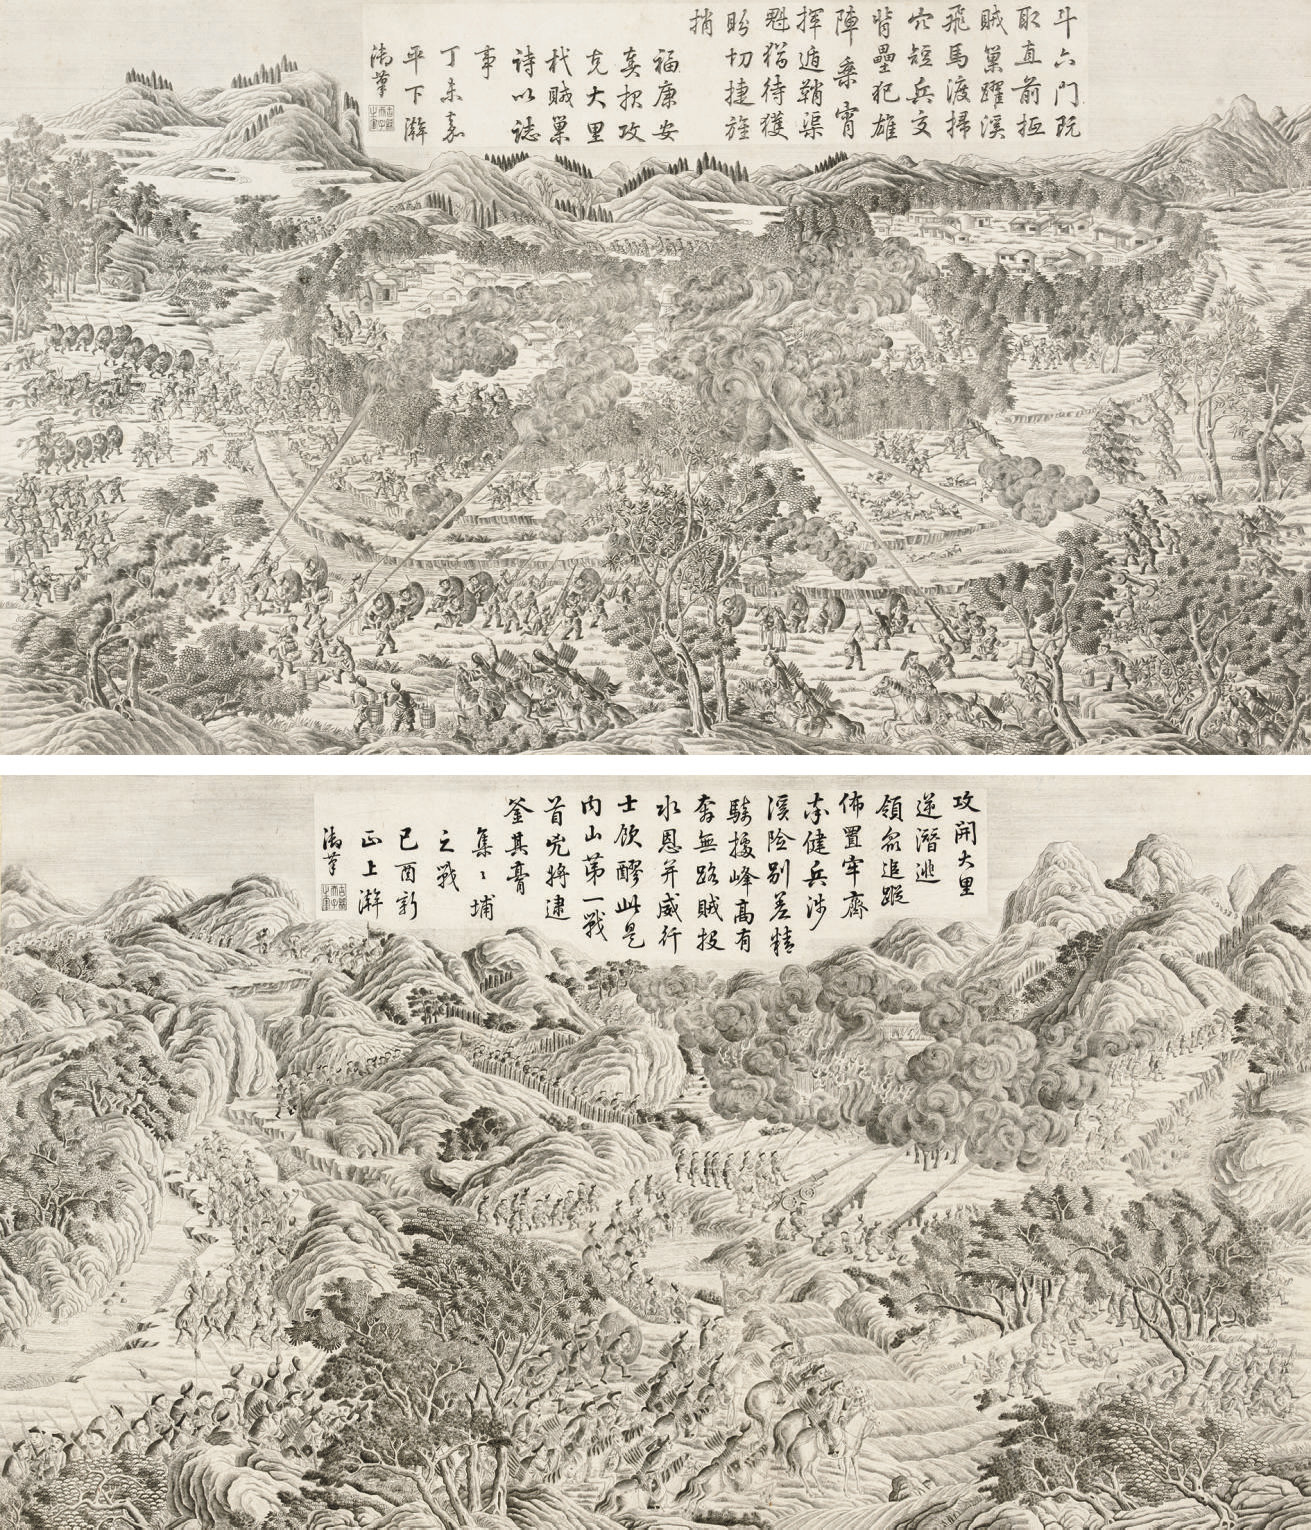 The Conquests of the Emperor Qianlong (1736-95)